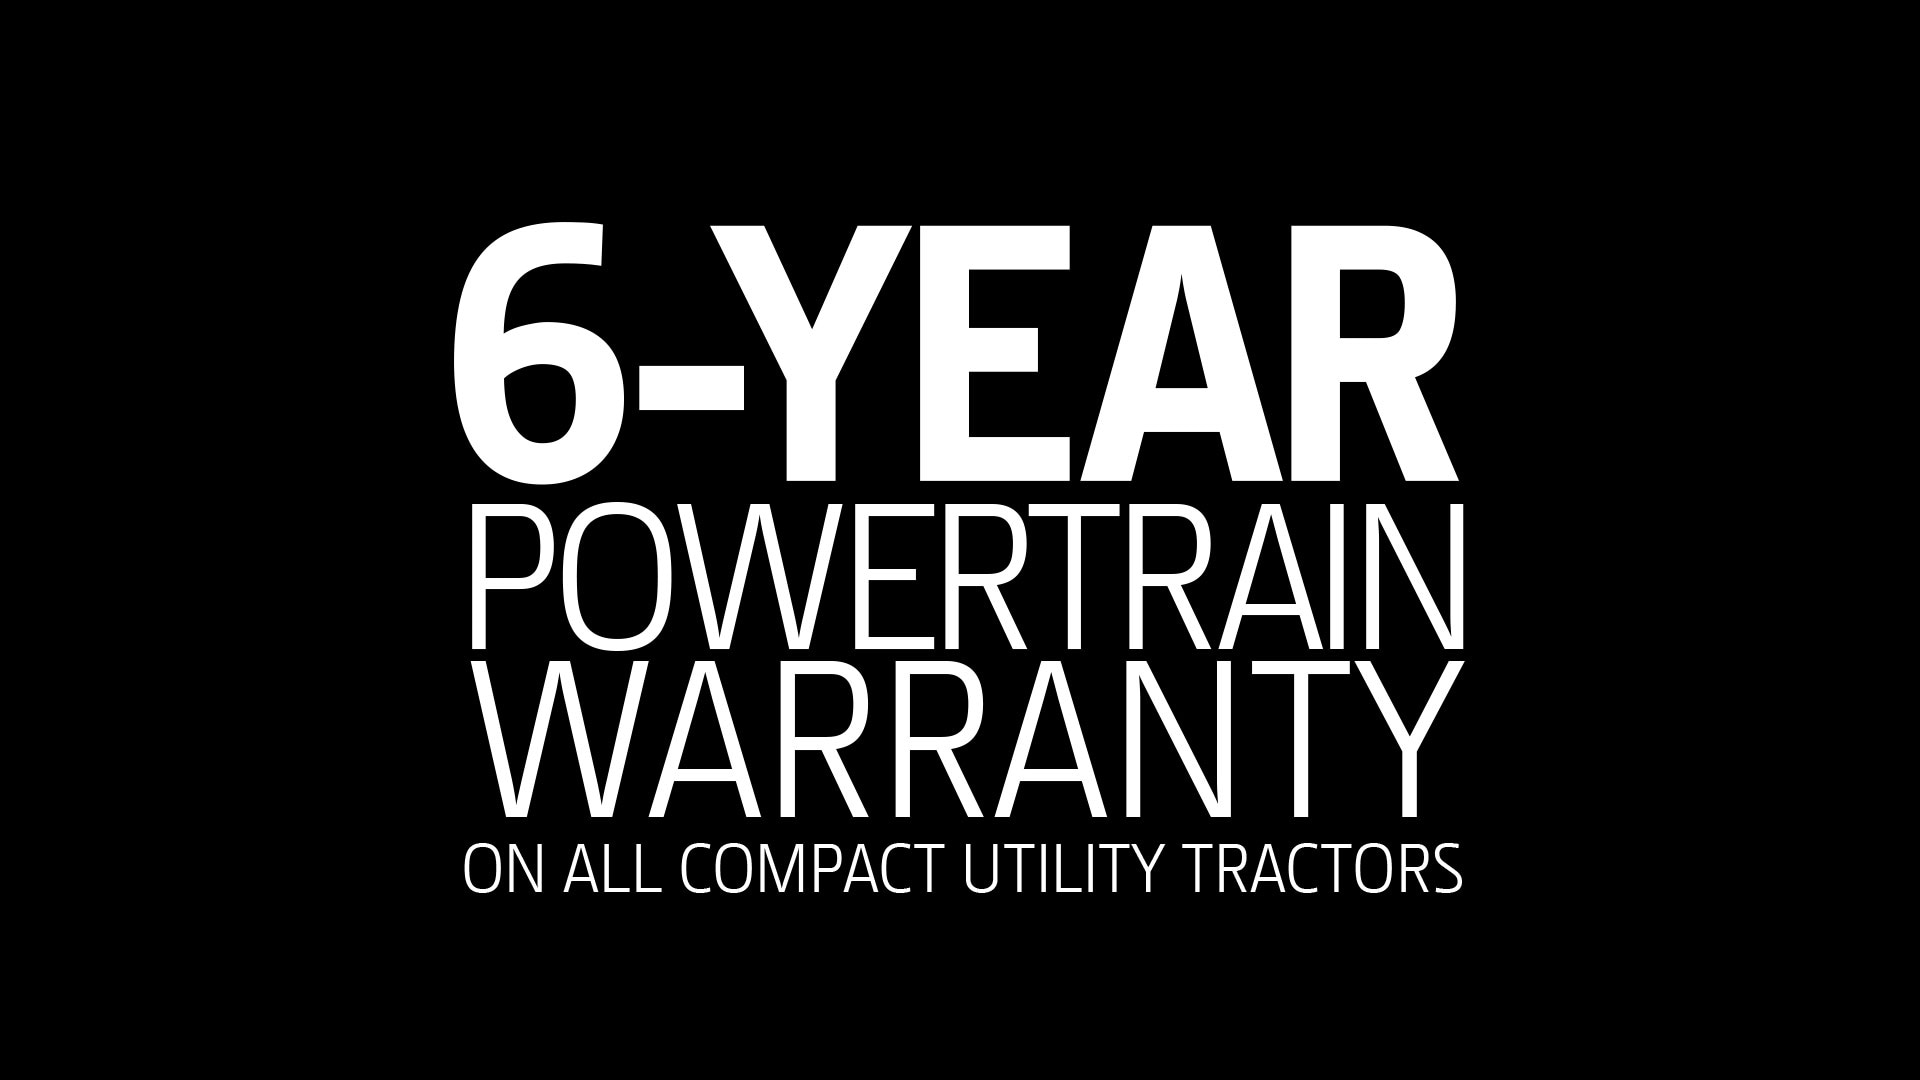 6 year warranty image